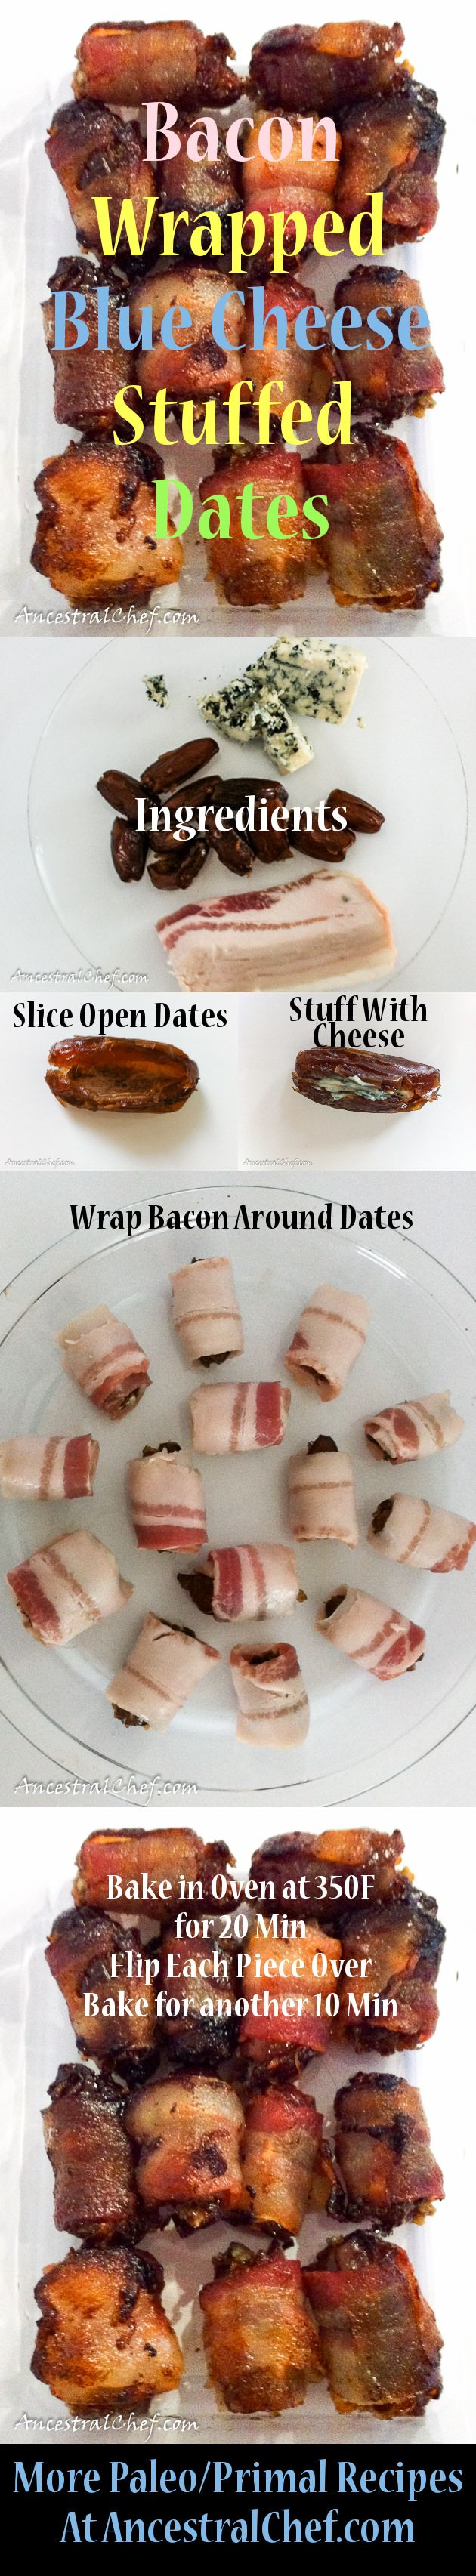 I have no idea who originally came up with this absolutely fabulous concoction, but she/he must have been a genius! I first had bacon wrapped blue cheese s